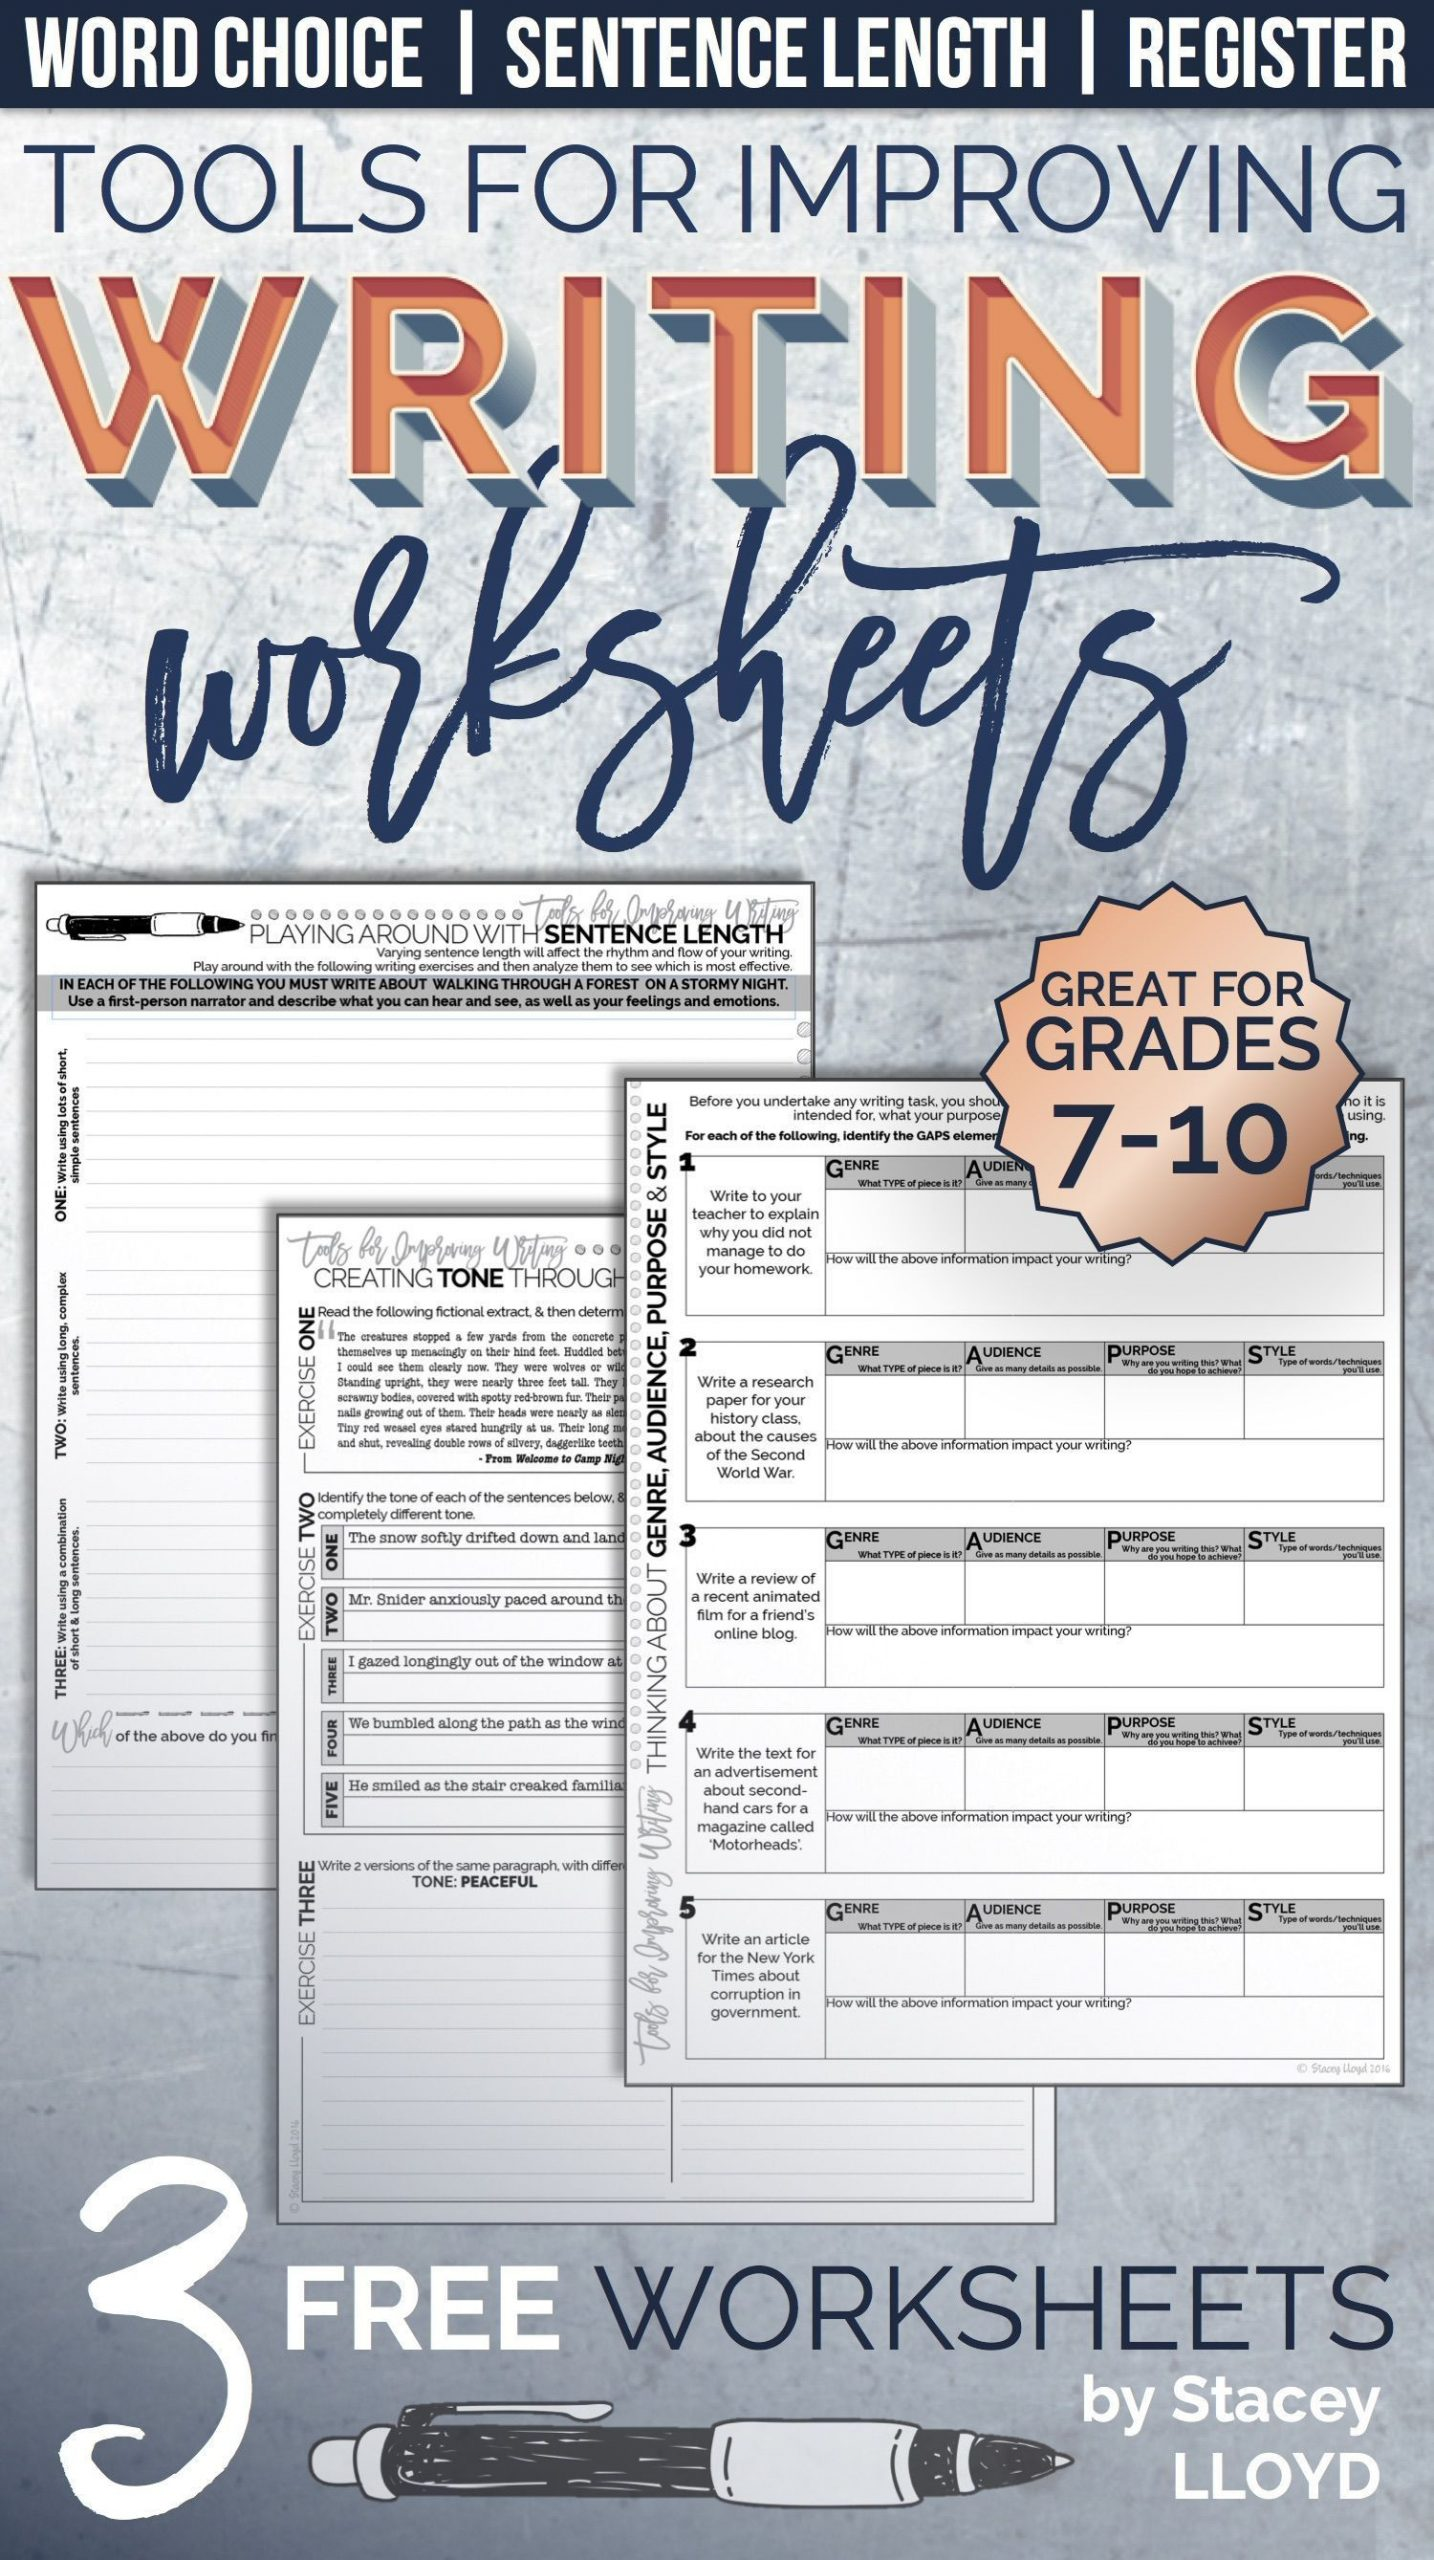 9th Grade Writing Worksheets Free tools for Improving Writing Worksheets 9th Grade